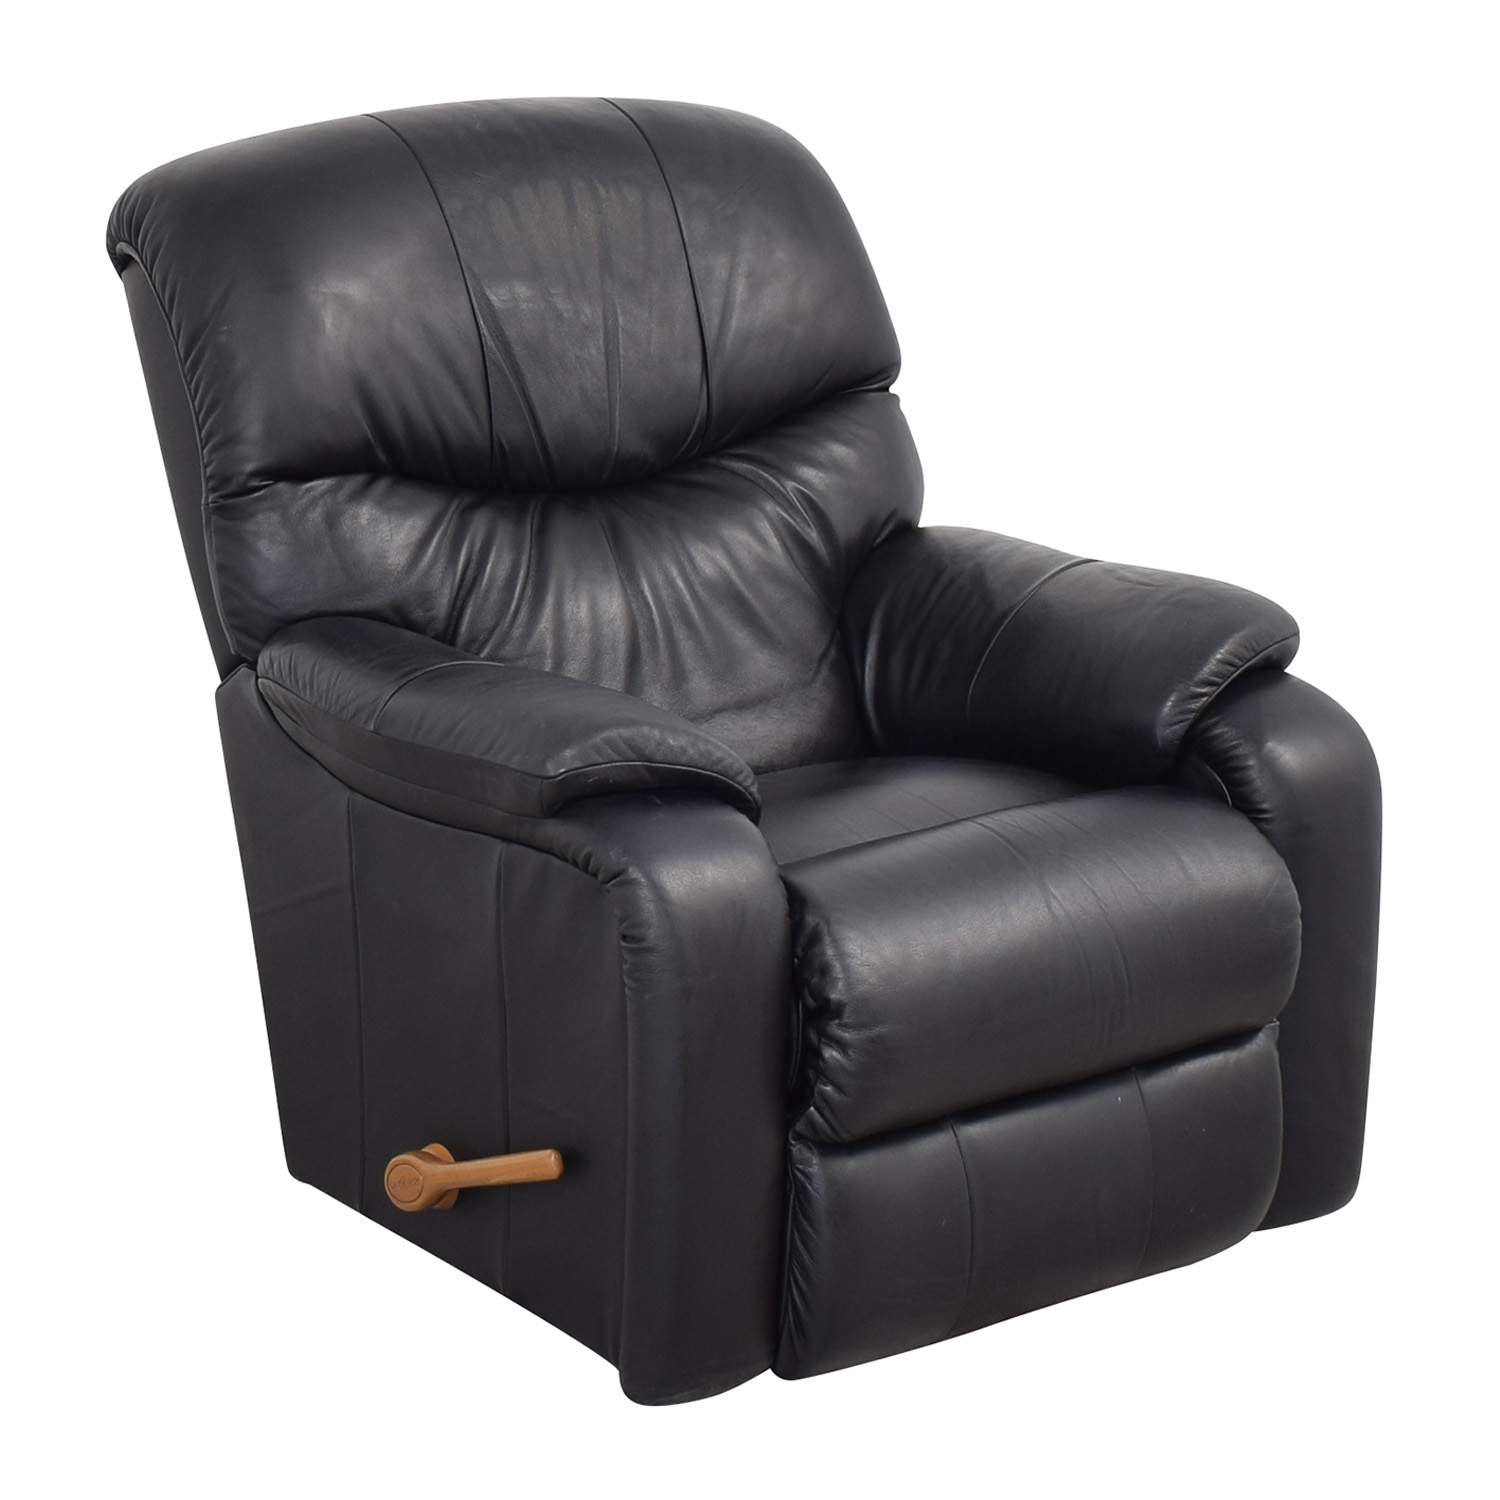 La-Z-Boy La-Z-Boy Recliner price